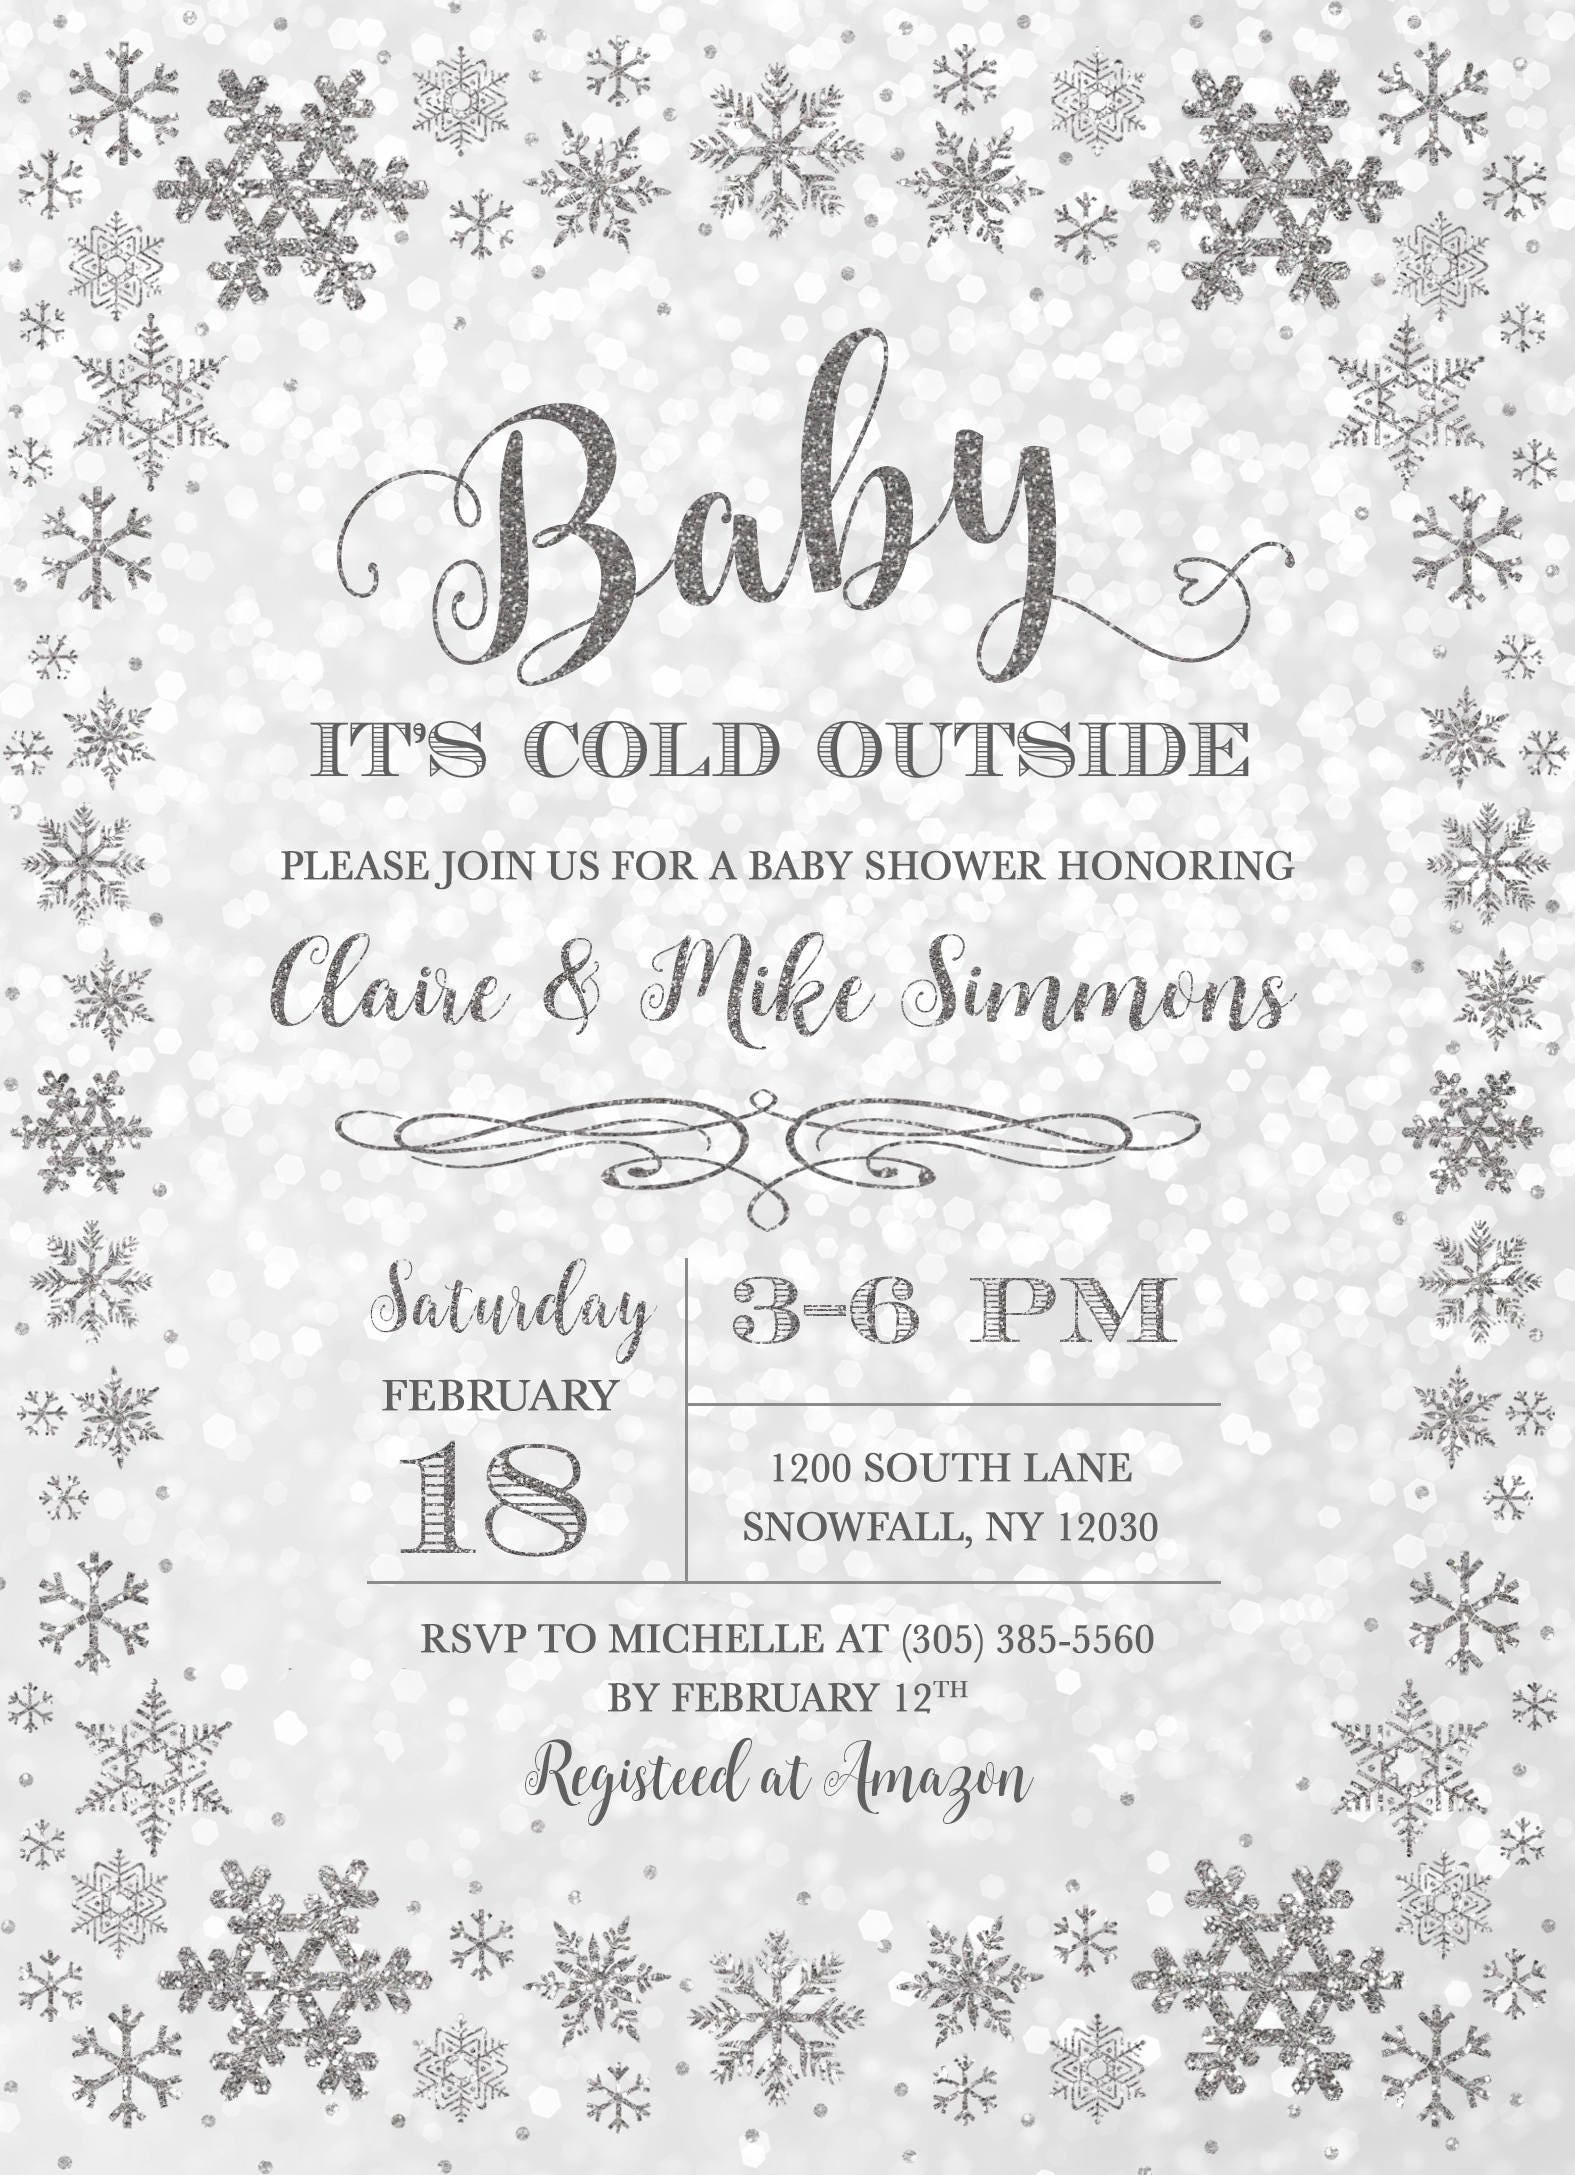 Winter Wonderland Baby Shower Invitation, Baby Itu0027s Cold Outside Baby  Shower Invitation, Silver Snowflake Baby Shower Invite, Gender Neutral